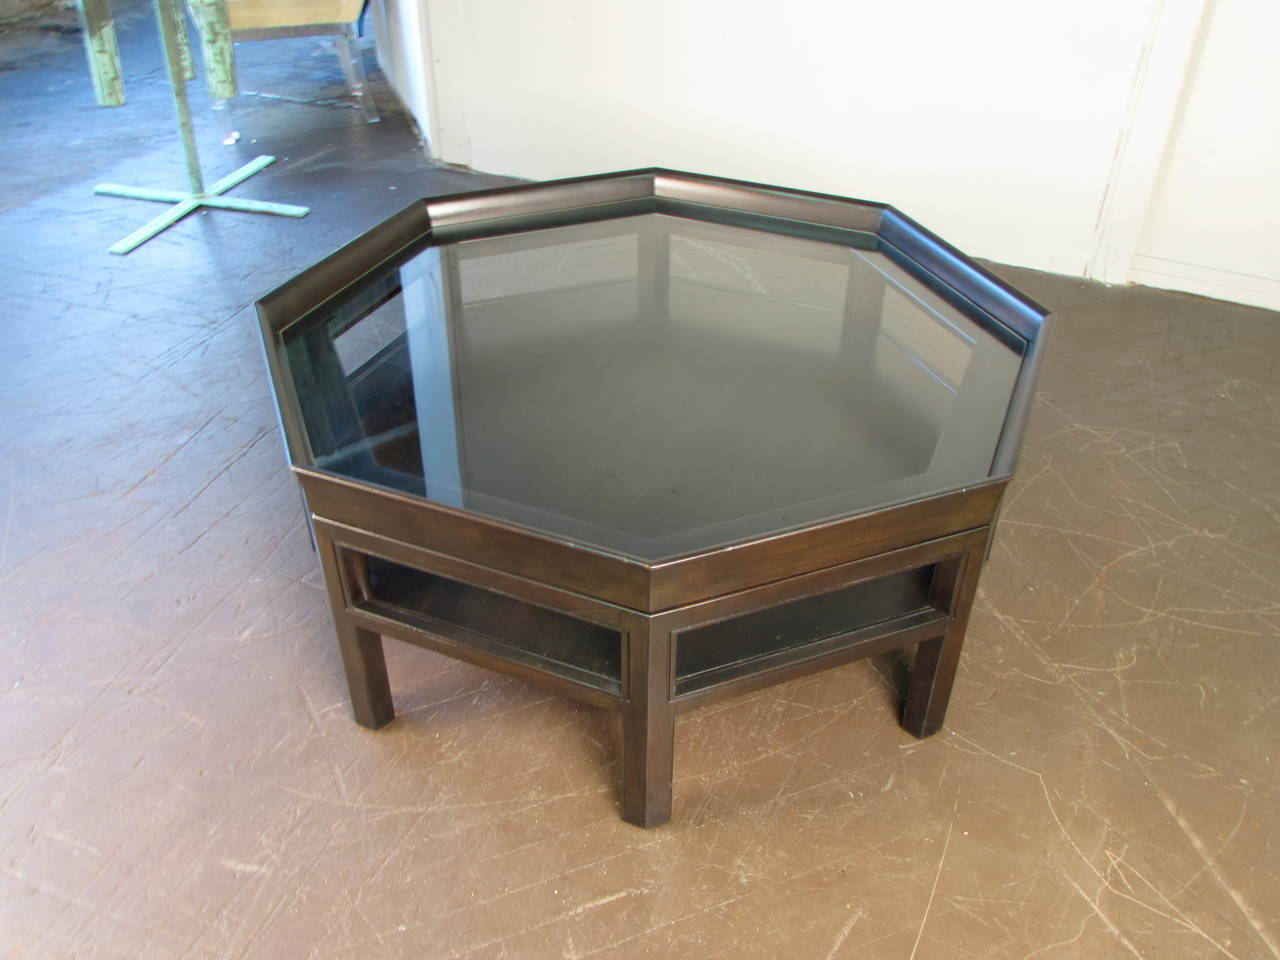 this octagonal coffee table by baker furniture is no longer available